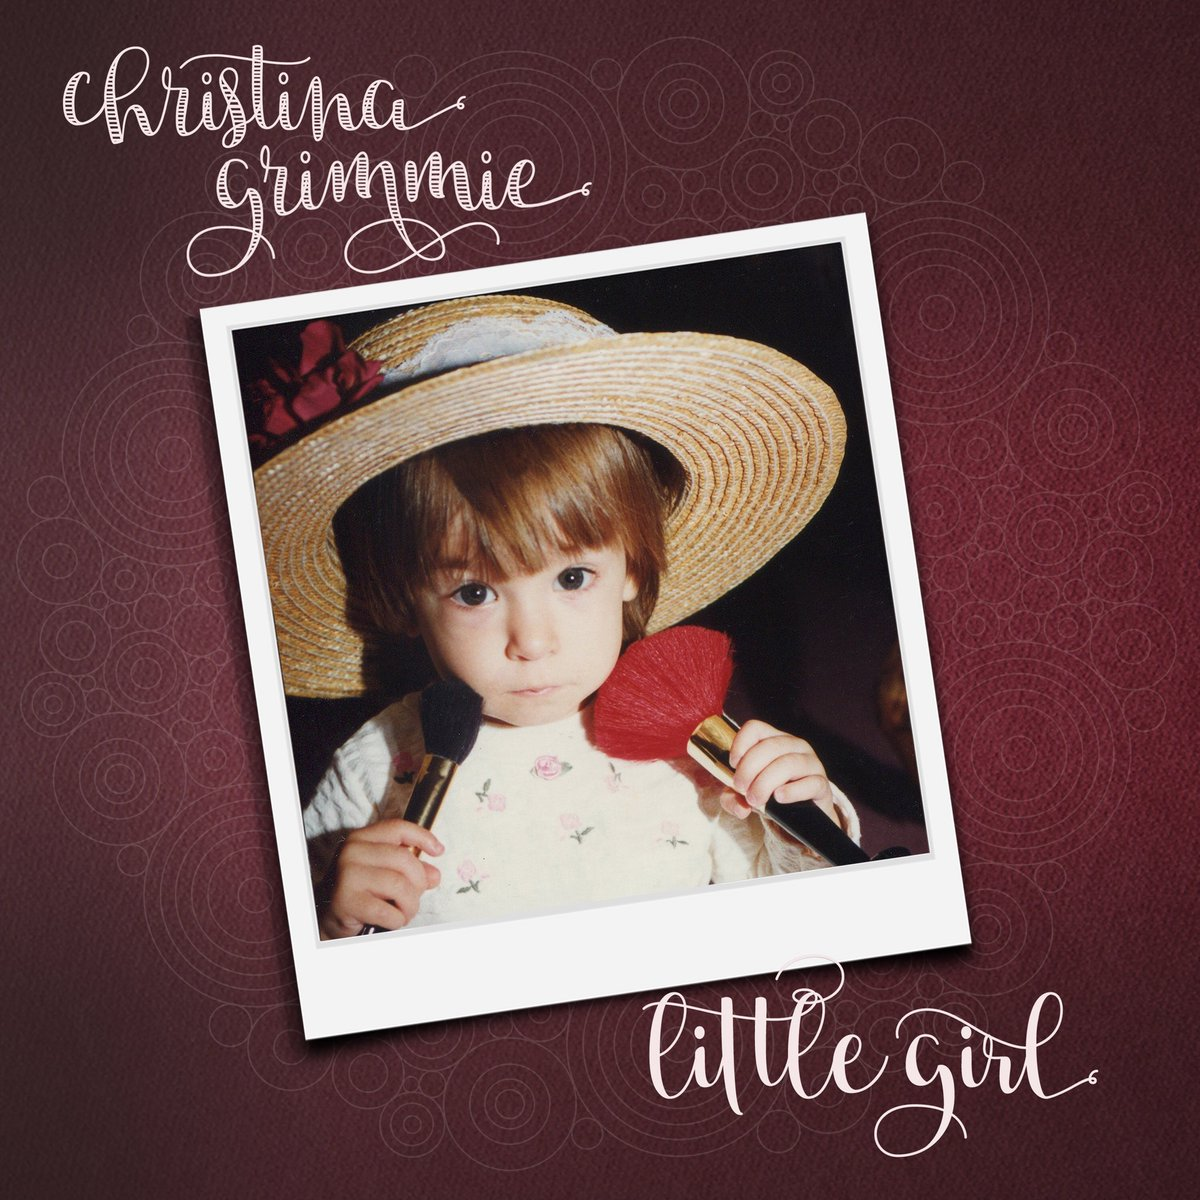 With love mama grimmie littlegirl christinagrimmie cg0511pic twitter com d2lmd8xqmy